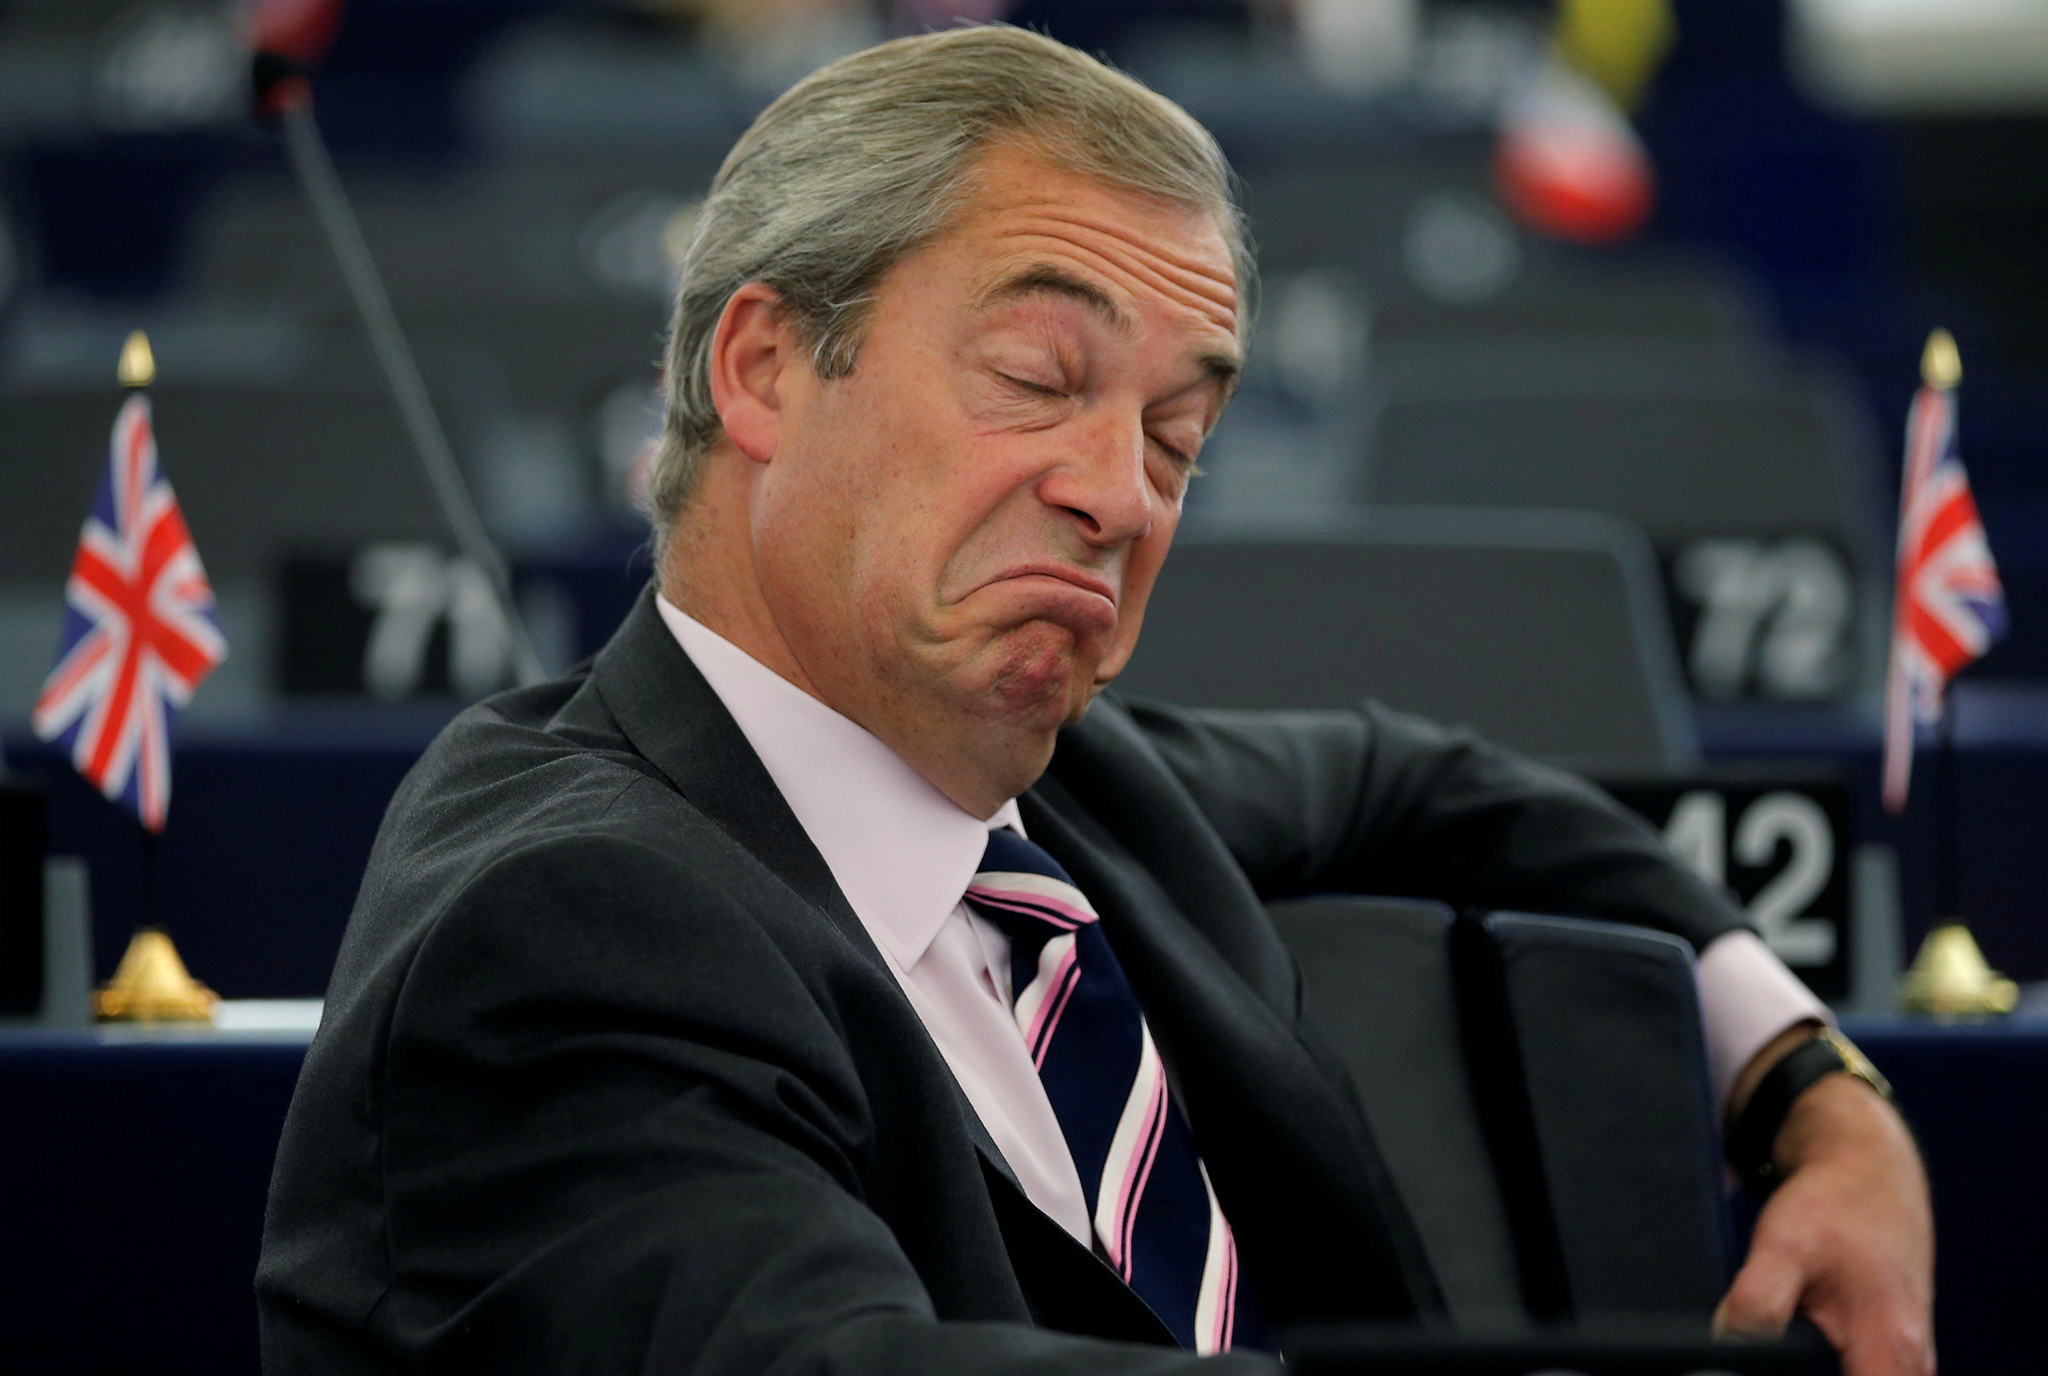 Nigel Farage, United Kingdom Independence Party (UKIP) member and MEP, waits for the start of a debate on the last European Summit at the European Parliament in Strasbourg, France, October 26, 2016.   REUTERS/Vincent Kessler      TPX IMAGES OF THE DAY